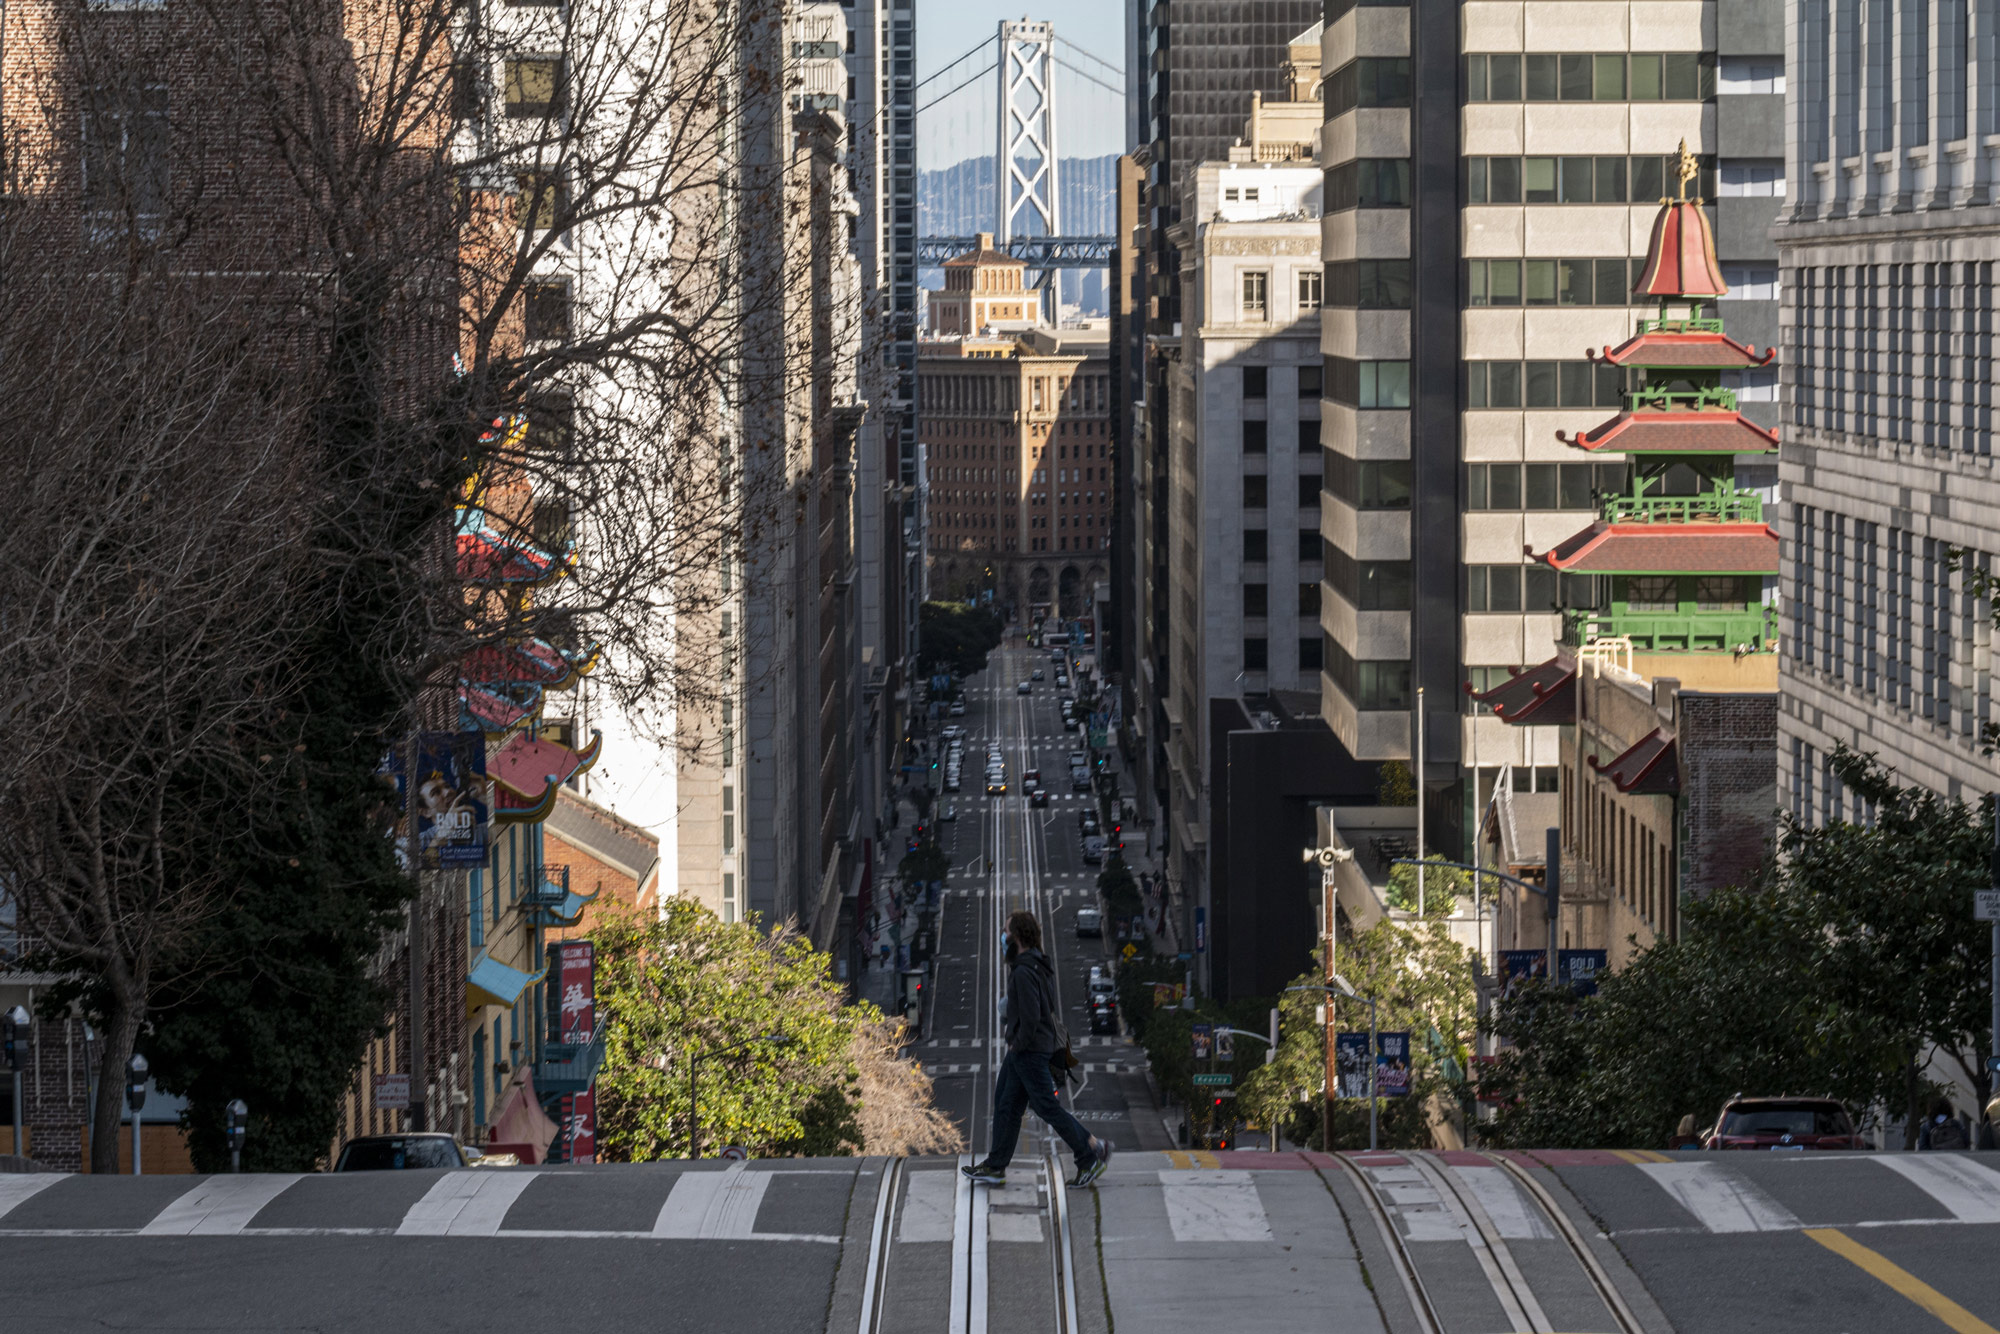 A pedestrian crosses the street in San Francisco on December 29.